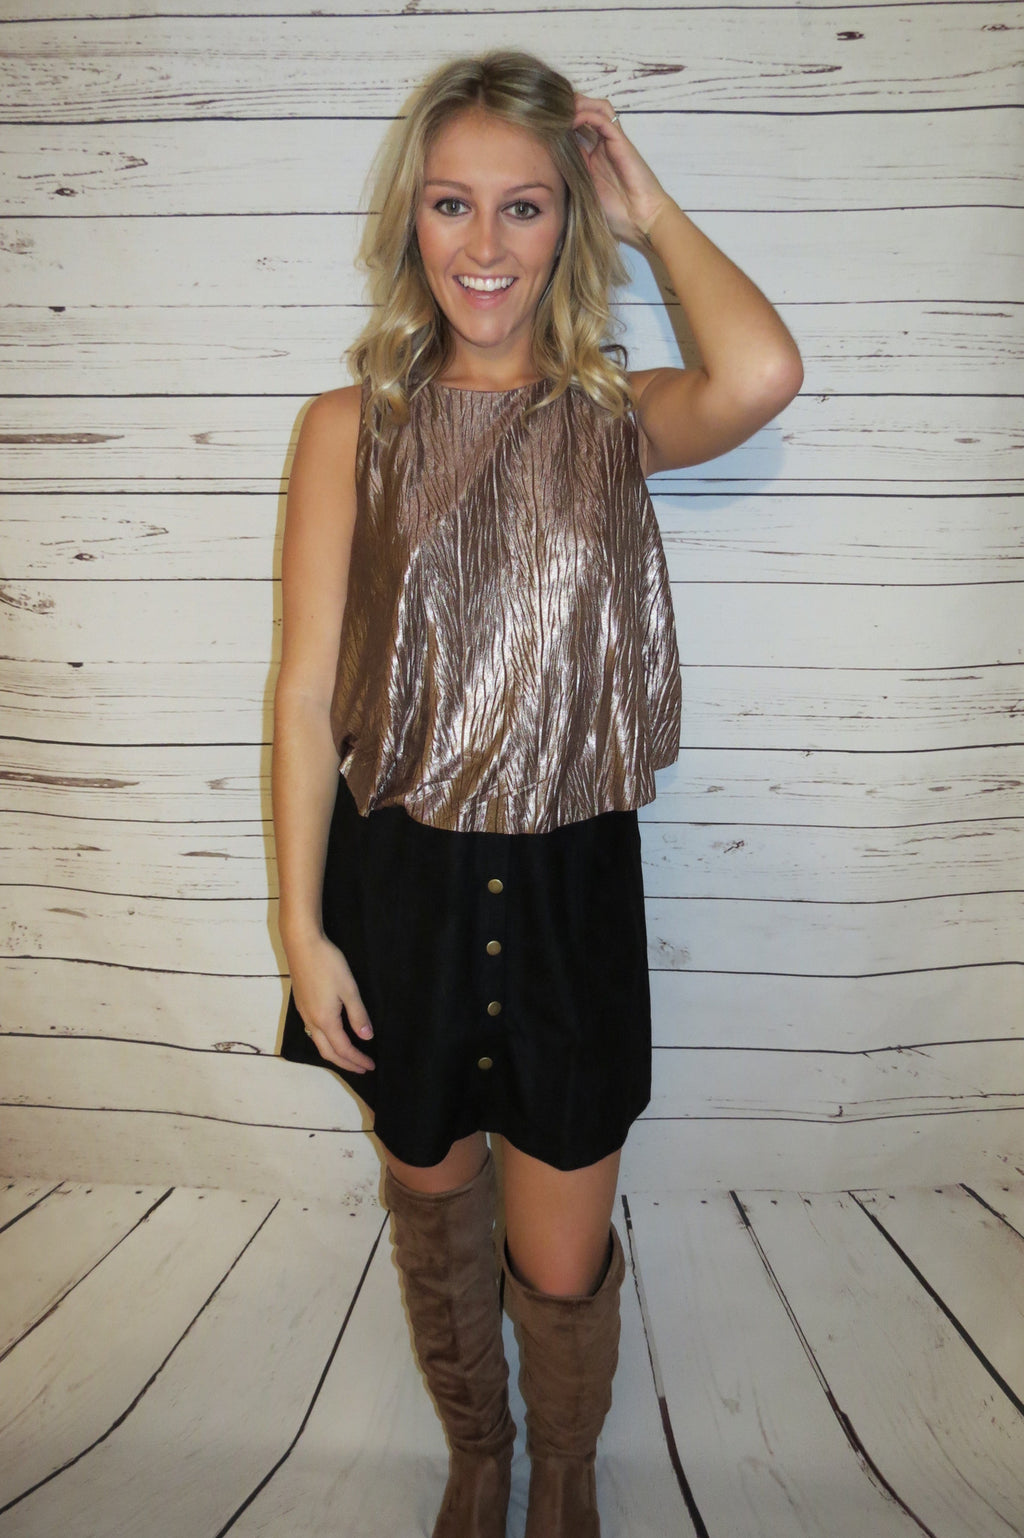 SLEEVELESS METALLIC CROP TOP - MOCHA